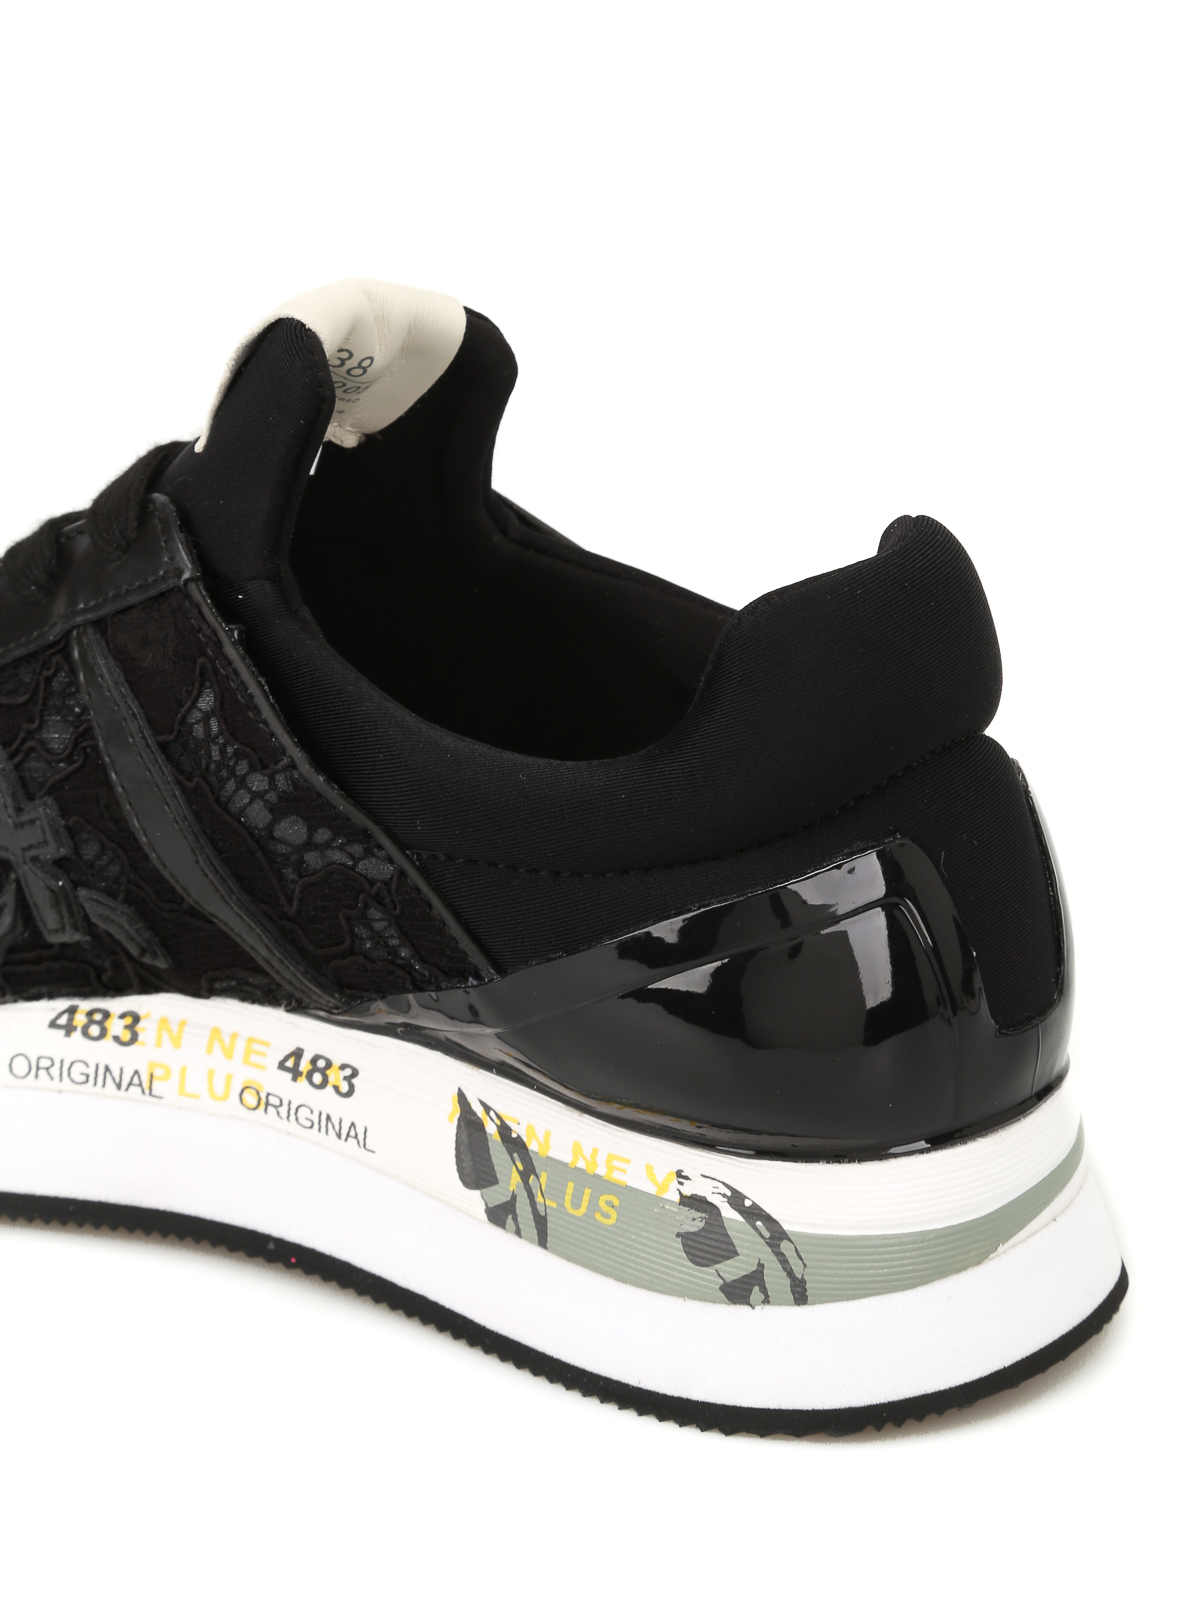 Sale For Sale Liz sneakers - Black Premiata Store For Sale Visit New Free Shipping Shopping Online tOTL8qEq